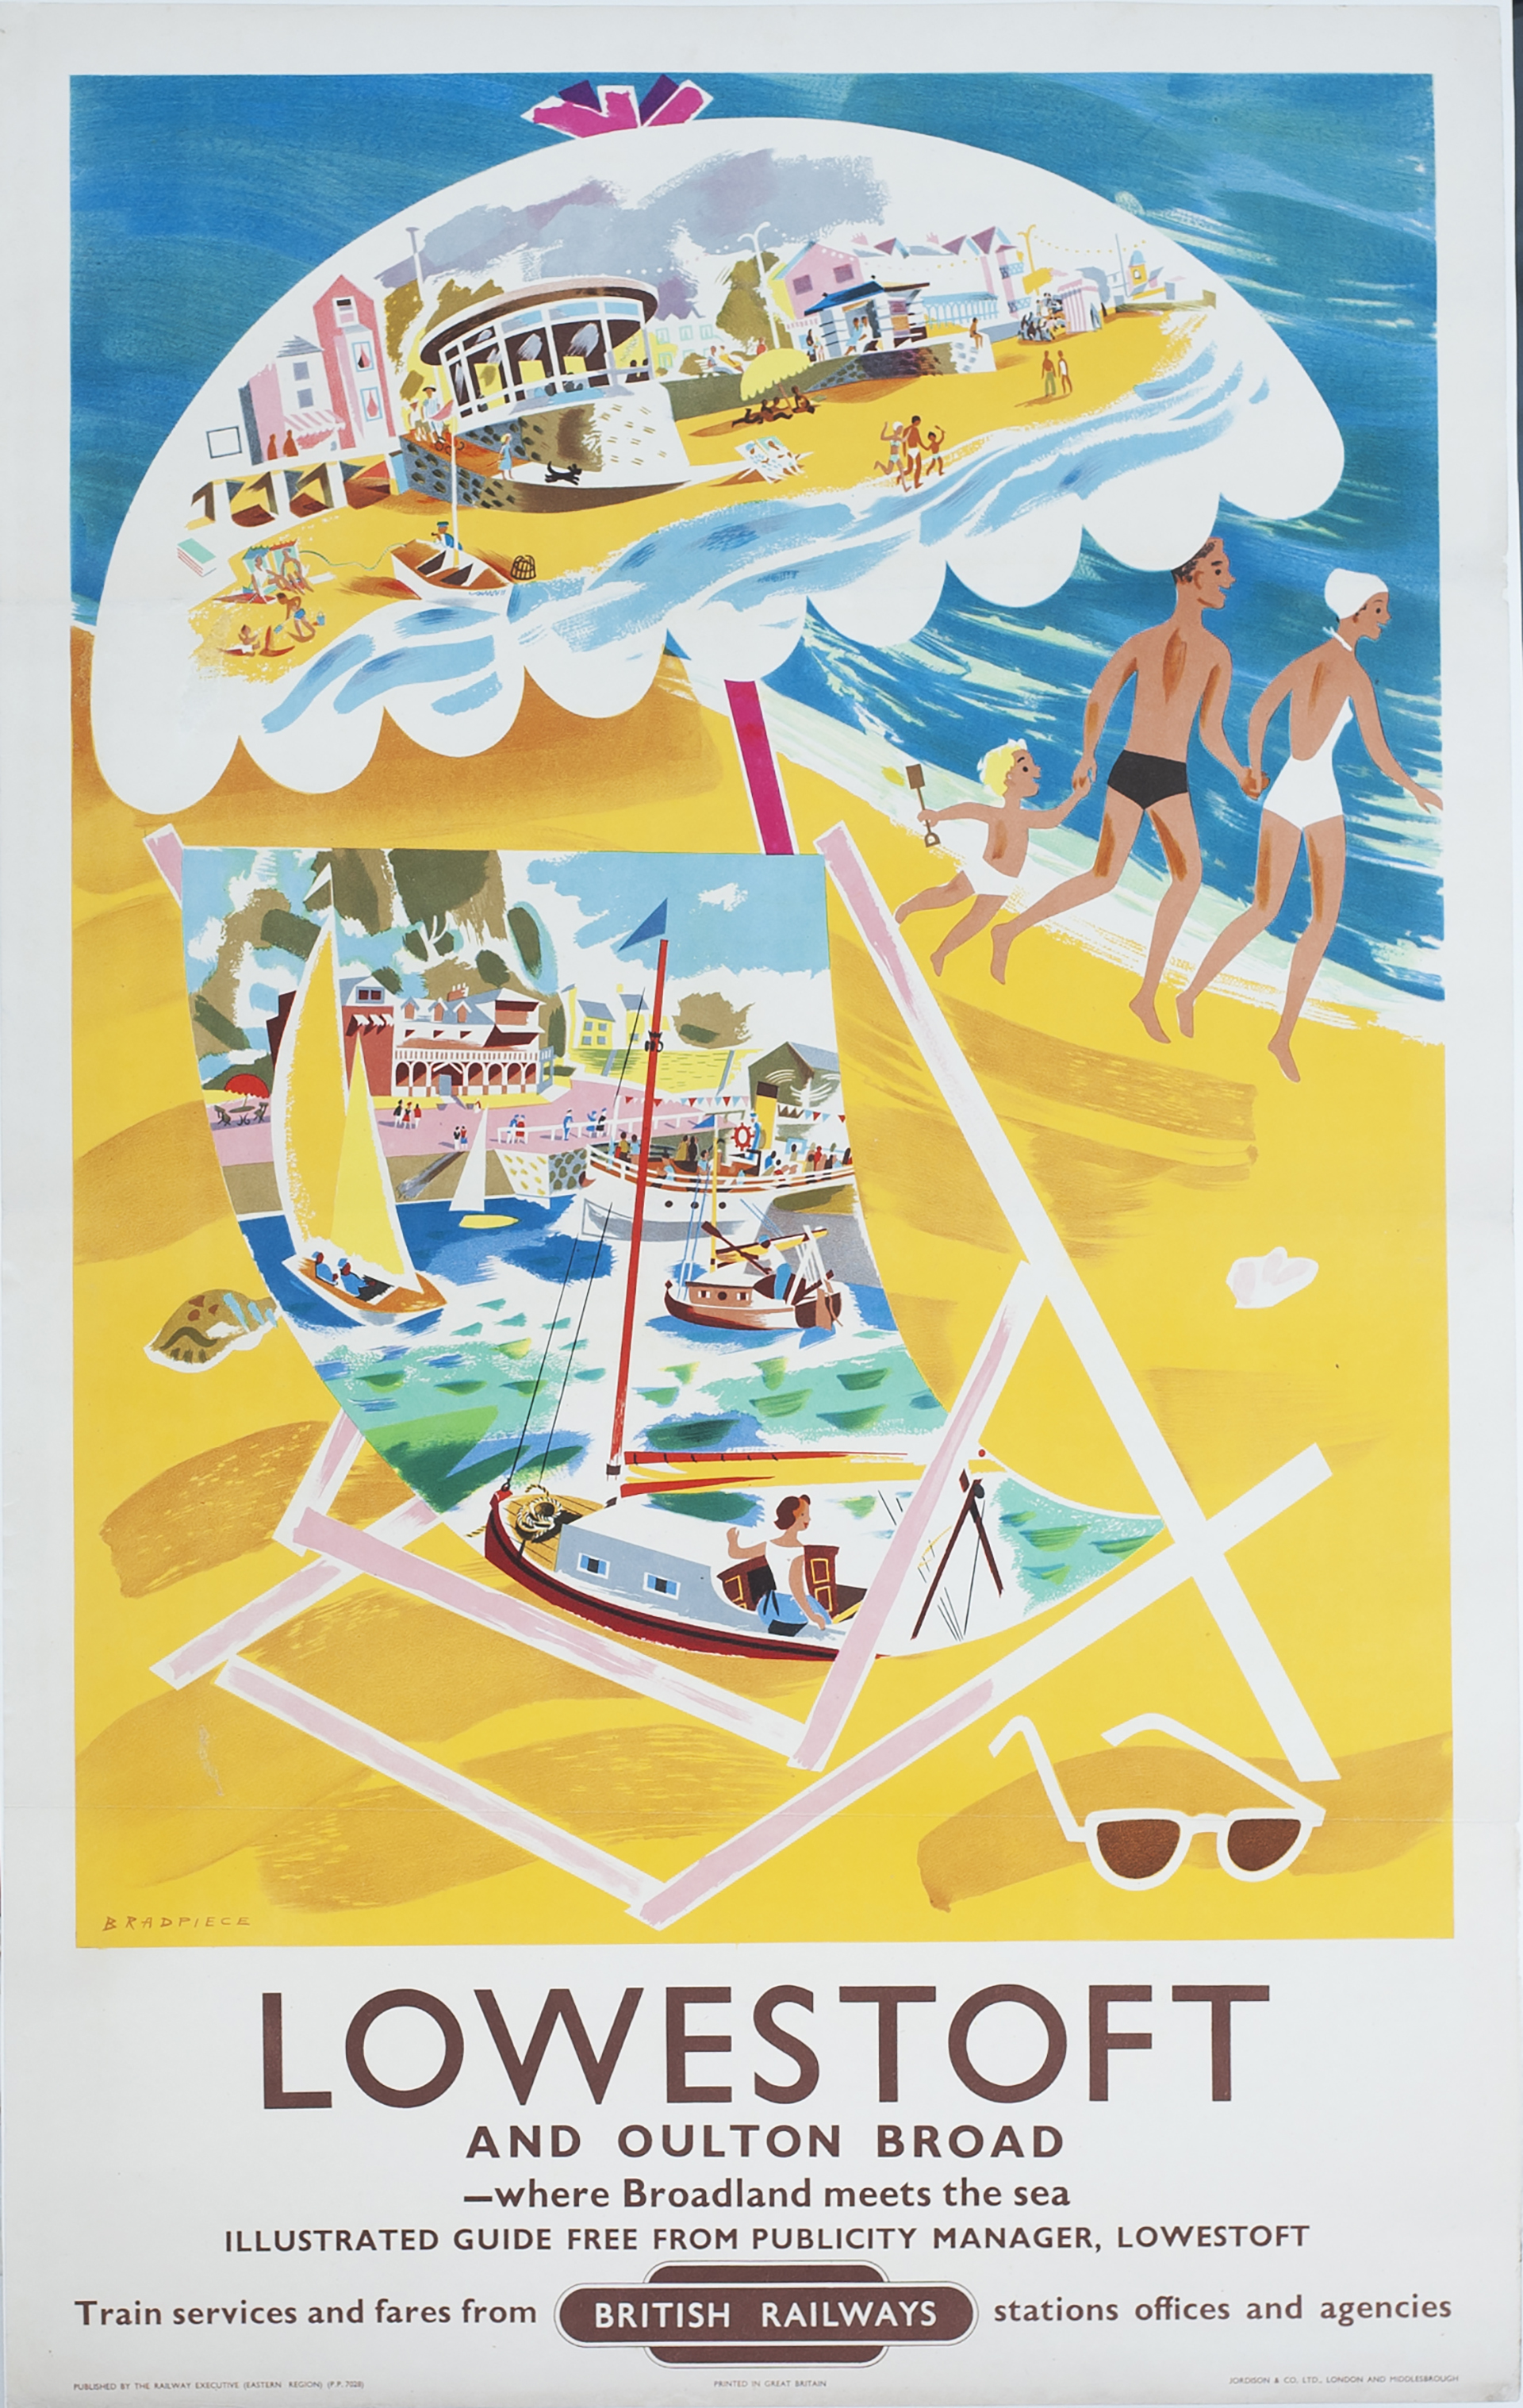 Poster BR(E) LOWESTOFT AND OULTON BROAD by Bradpiece. Double Royal 25in x 40in. In excellent